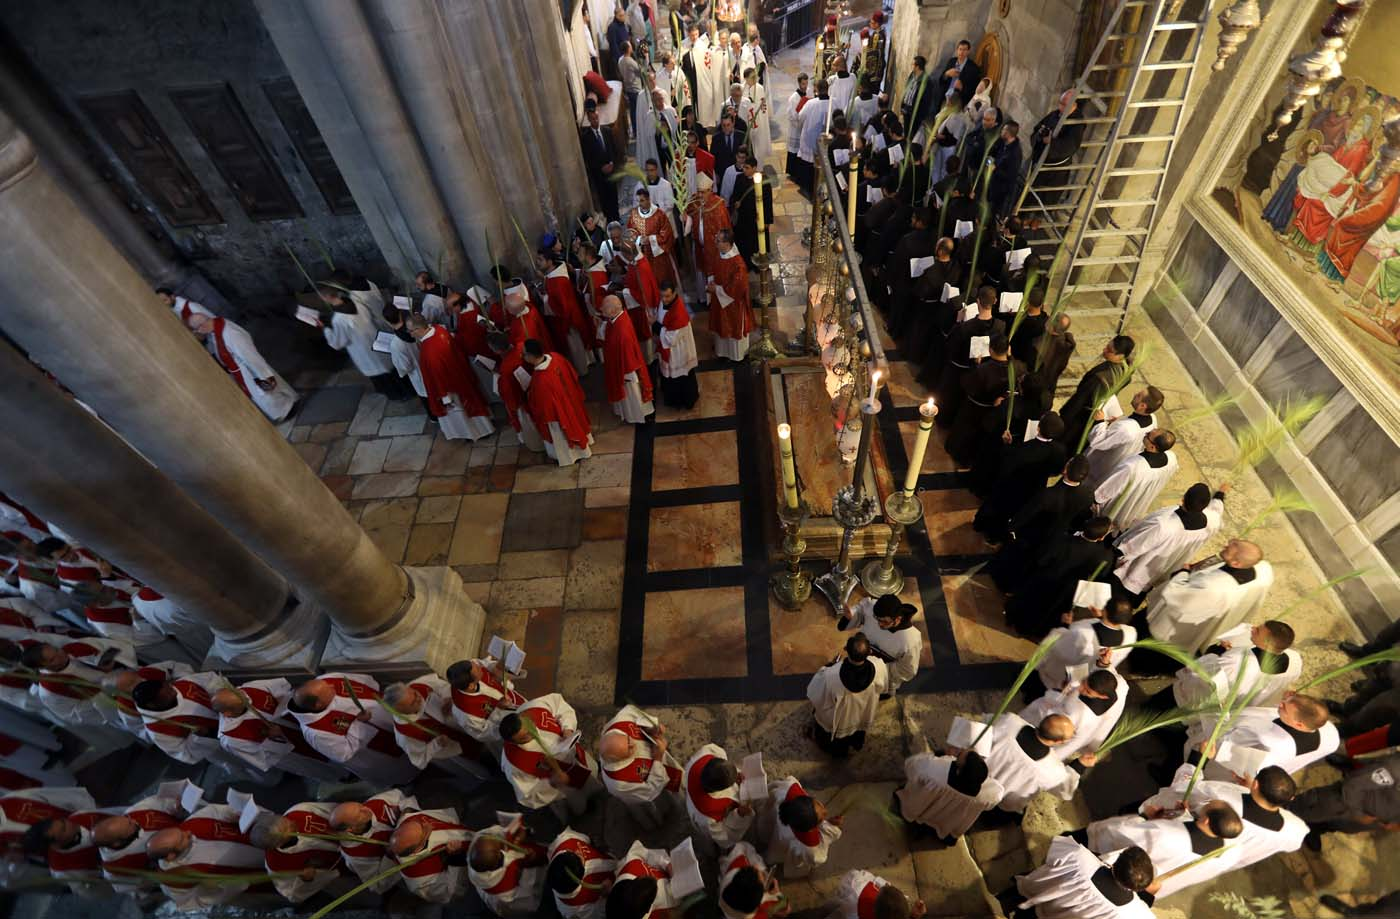 Catholic Christian worshippers attend a Palm Sunday ceremony in the Church of the Holy Sepulchre in Jerusalem's Old City April 9, 2017. REUTERS/Ammar Awad